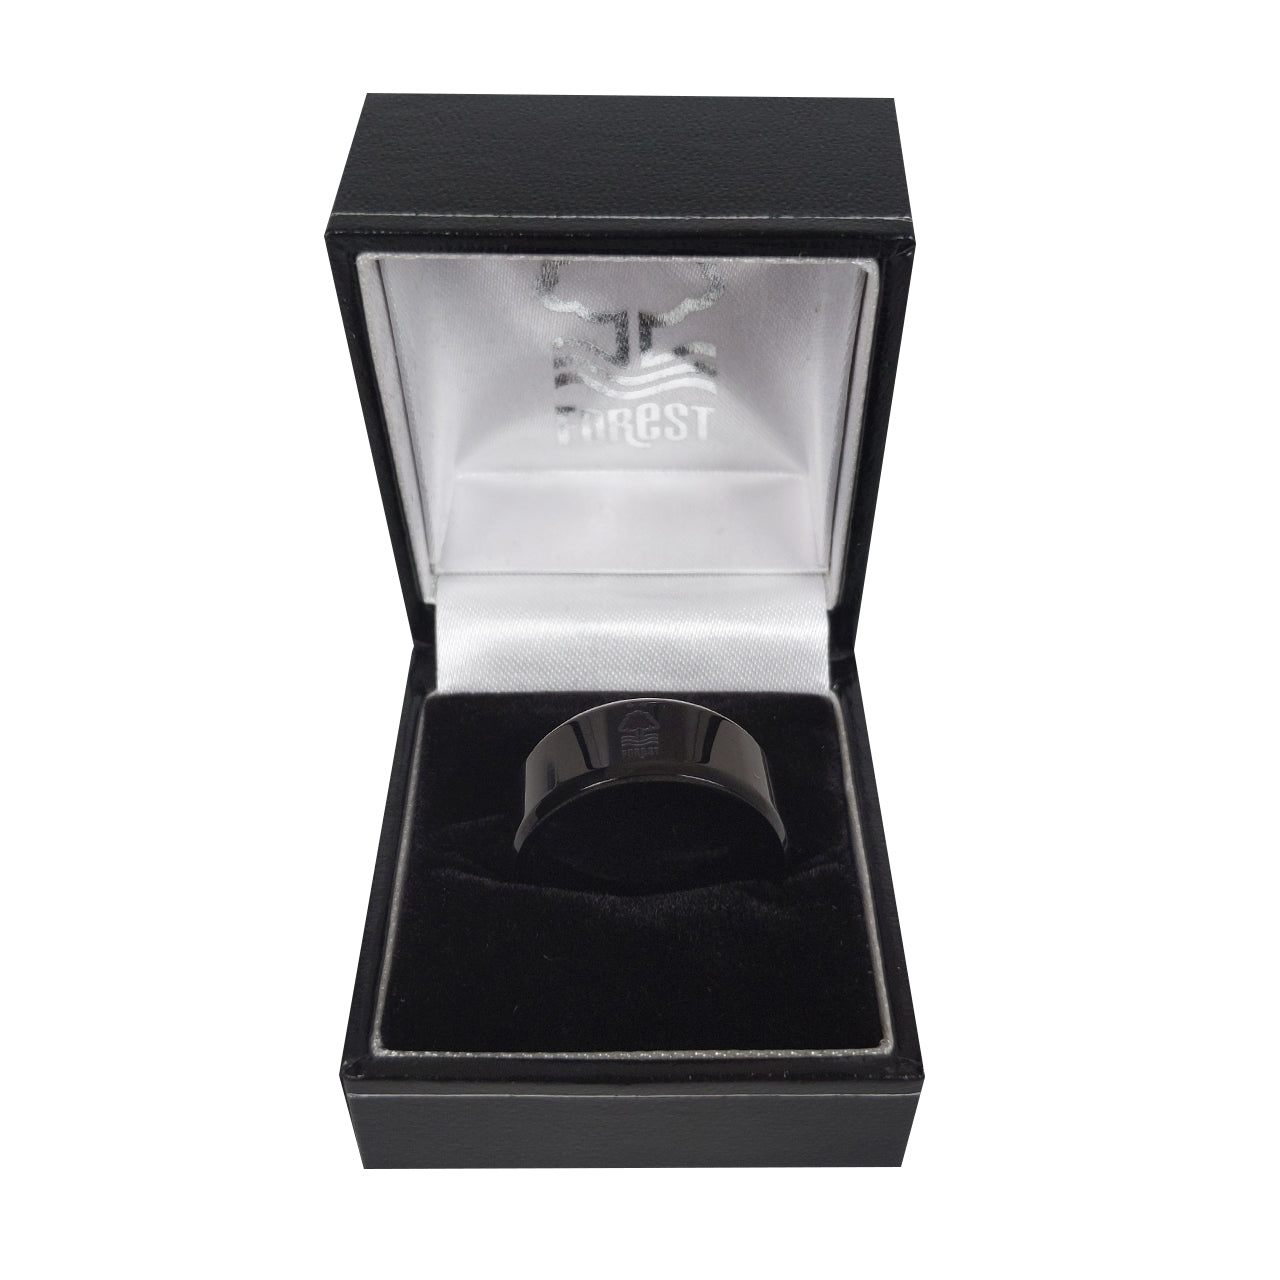 NFFC Black IP-Plated Crest Band Ring - Nottingham Forest